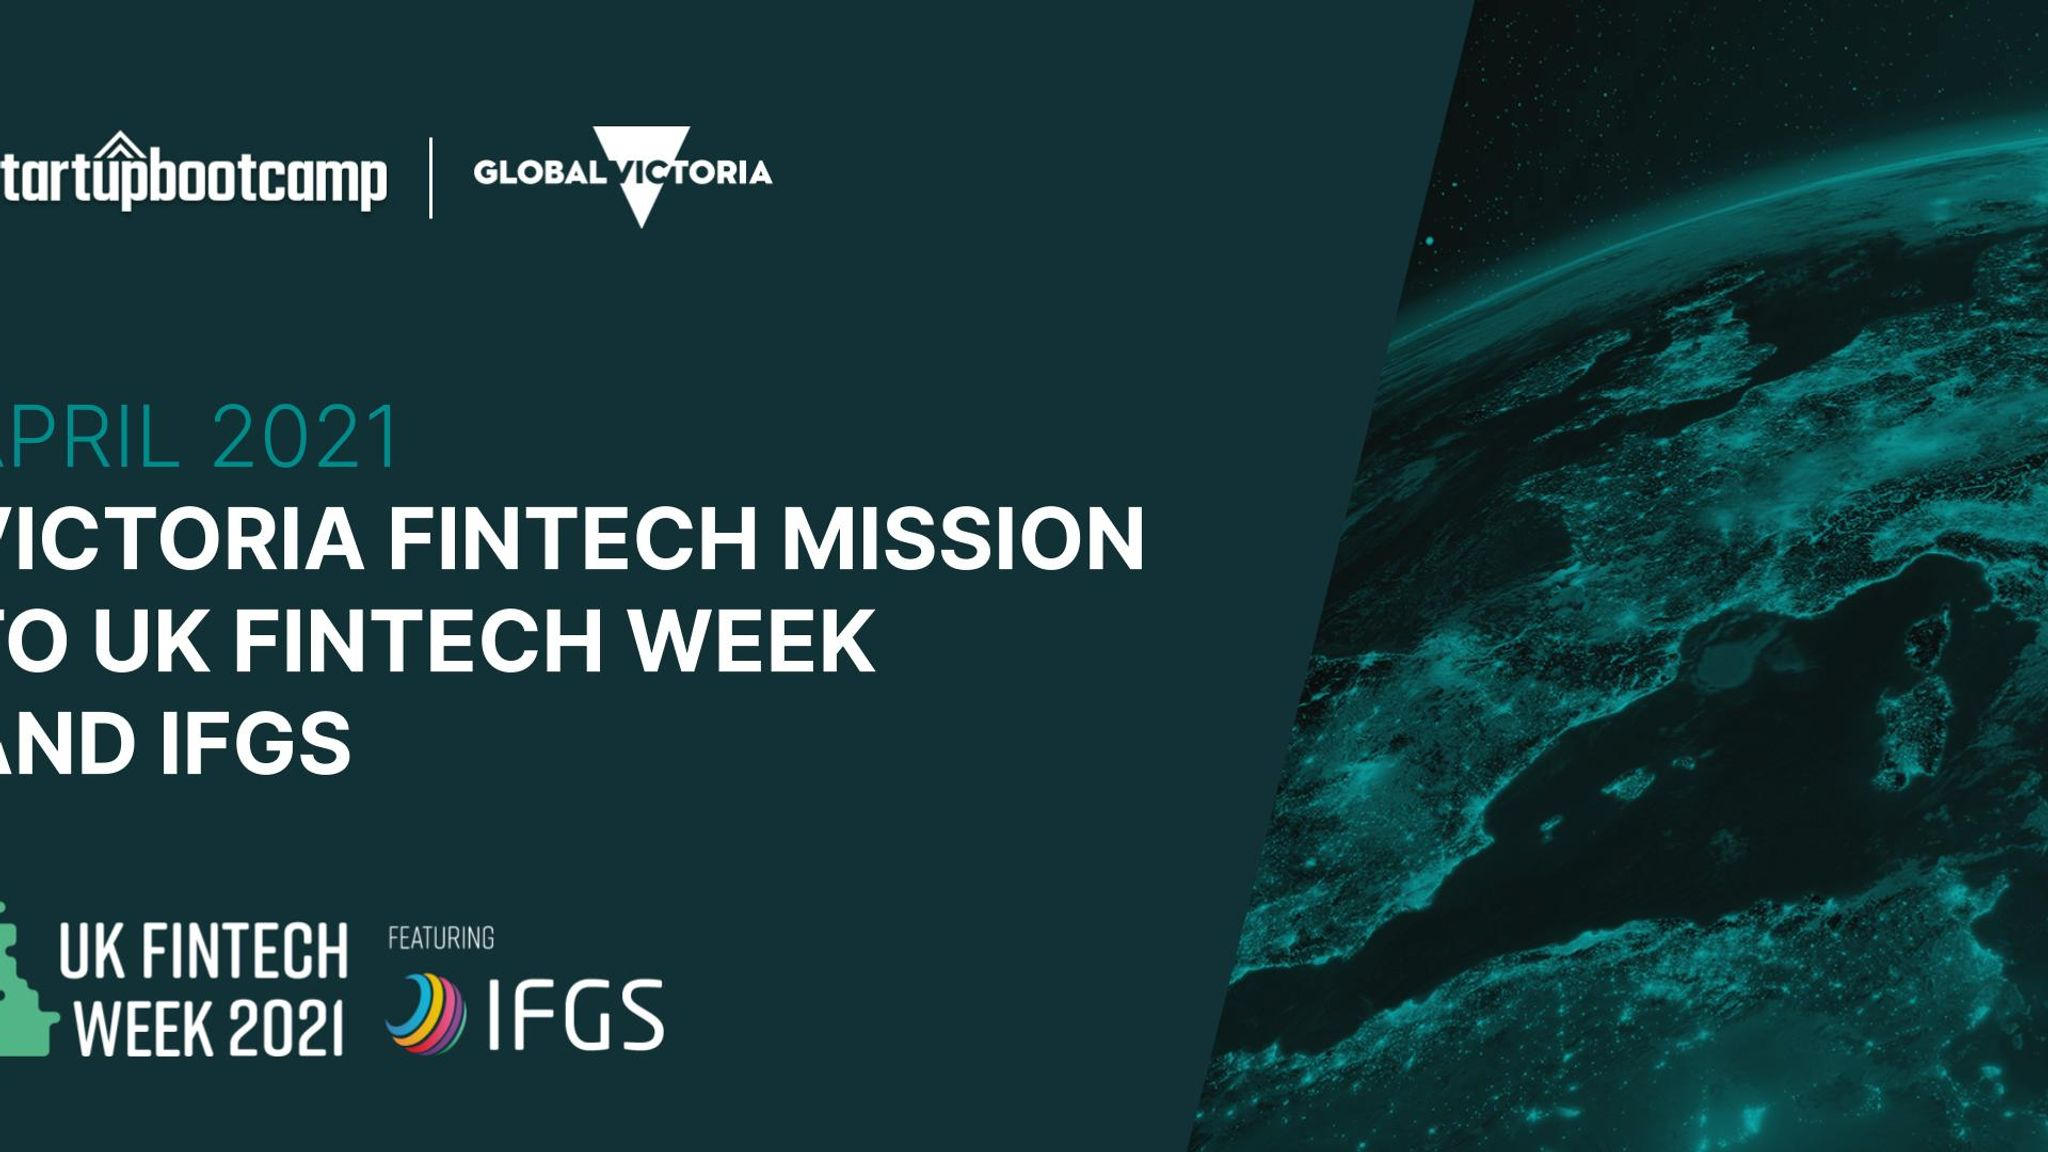 Victoria and the UK Unite for a Virtual Trade Mission Connecting the FinTech Ecosystems